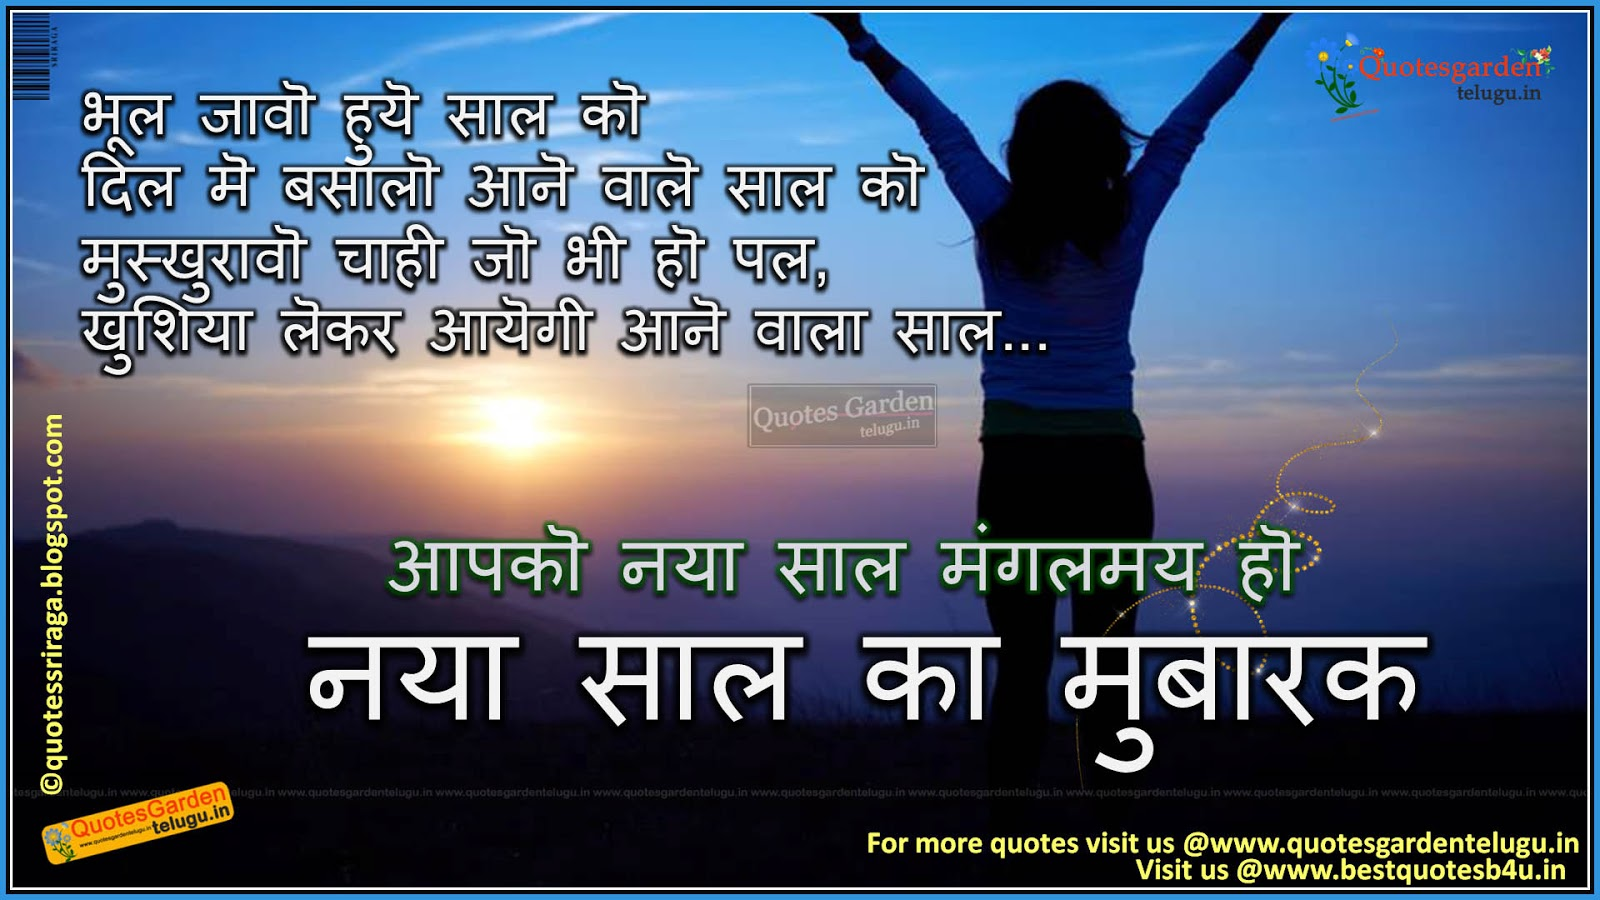 Happy New Year Wishes Messages Hindi Love Quotes In Hindi For New